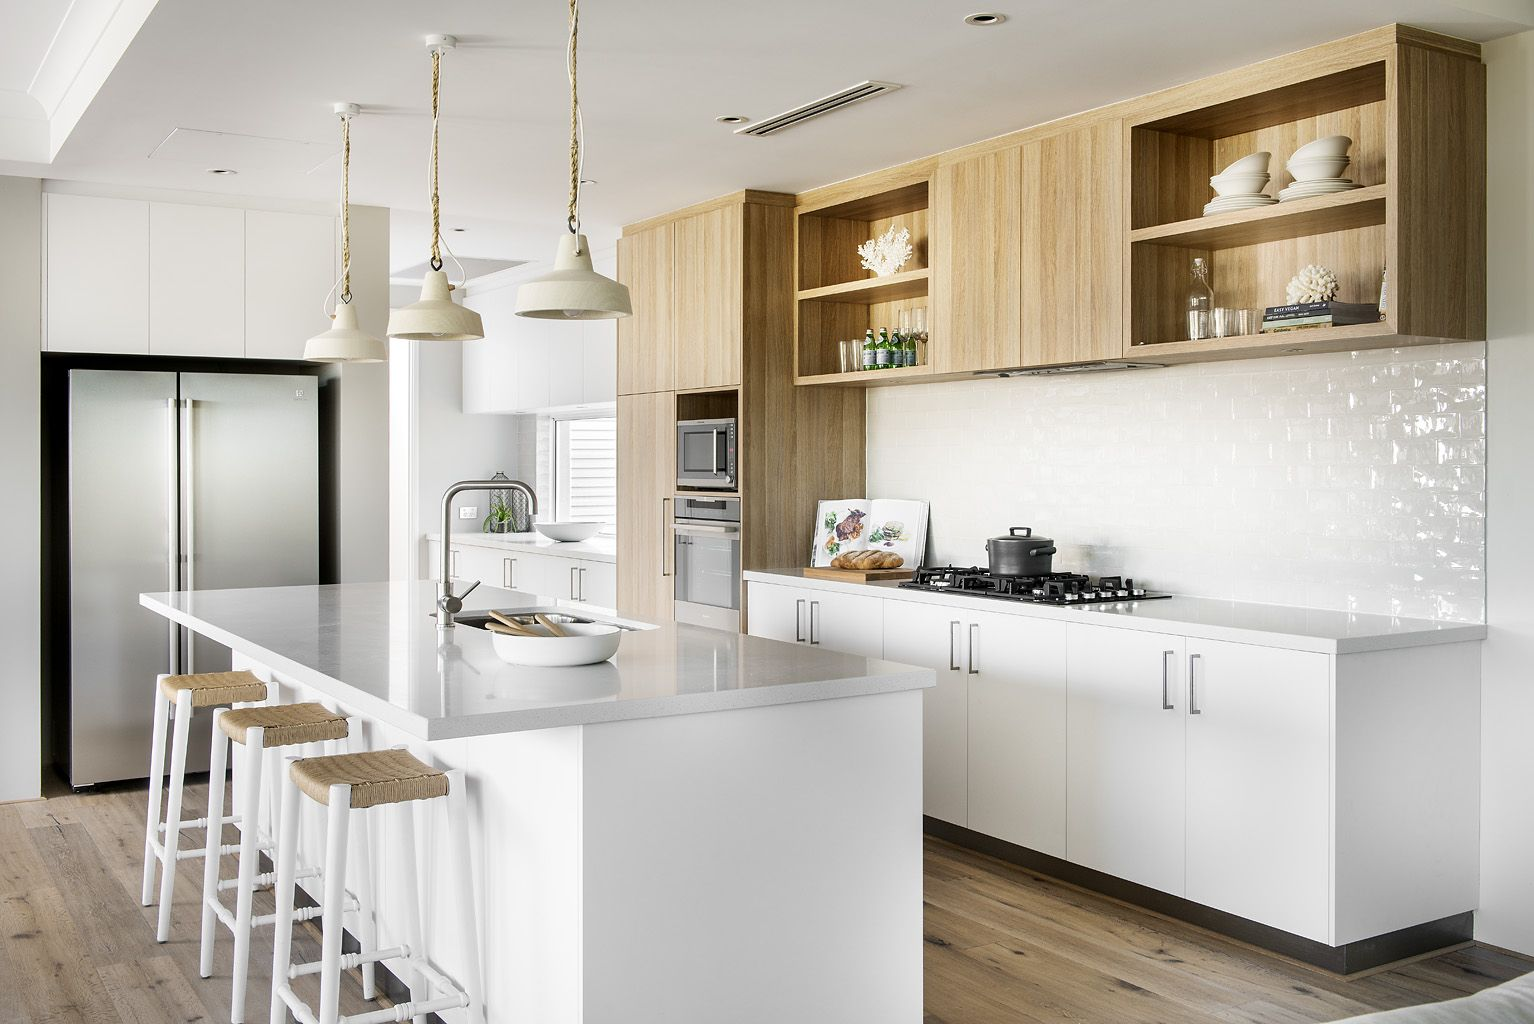 polytec kitchen doors and panels. Overheads and pantry in Natural ...